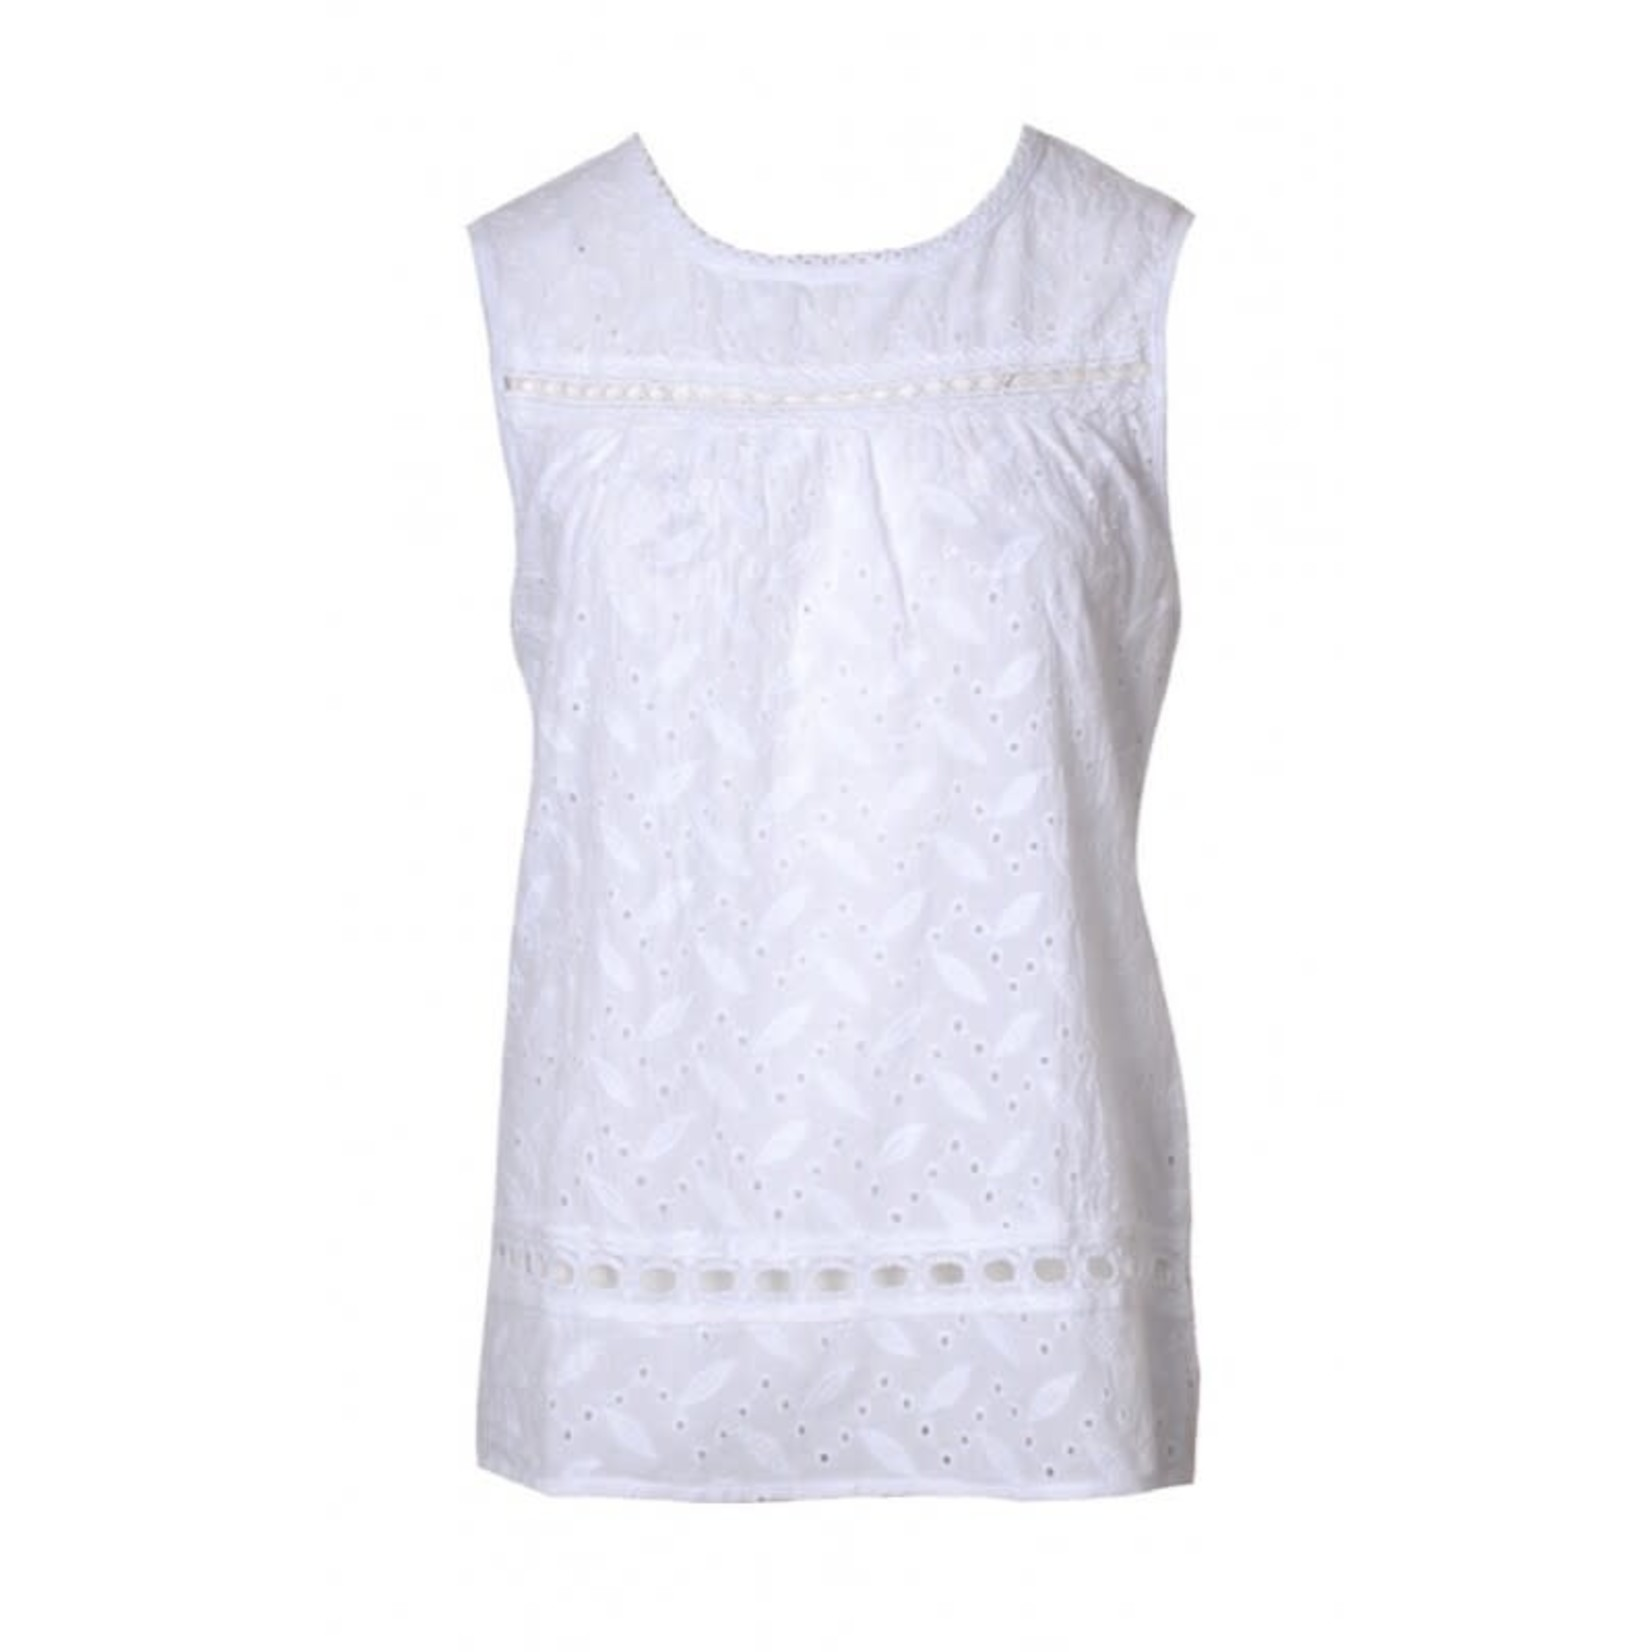 20-to Blouse Sleeveless Broderie